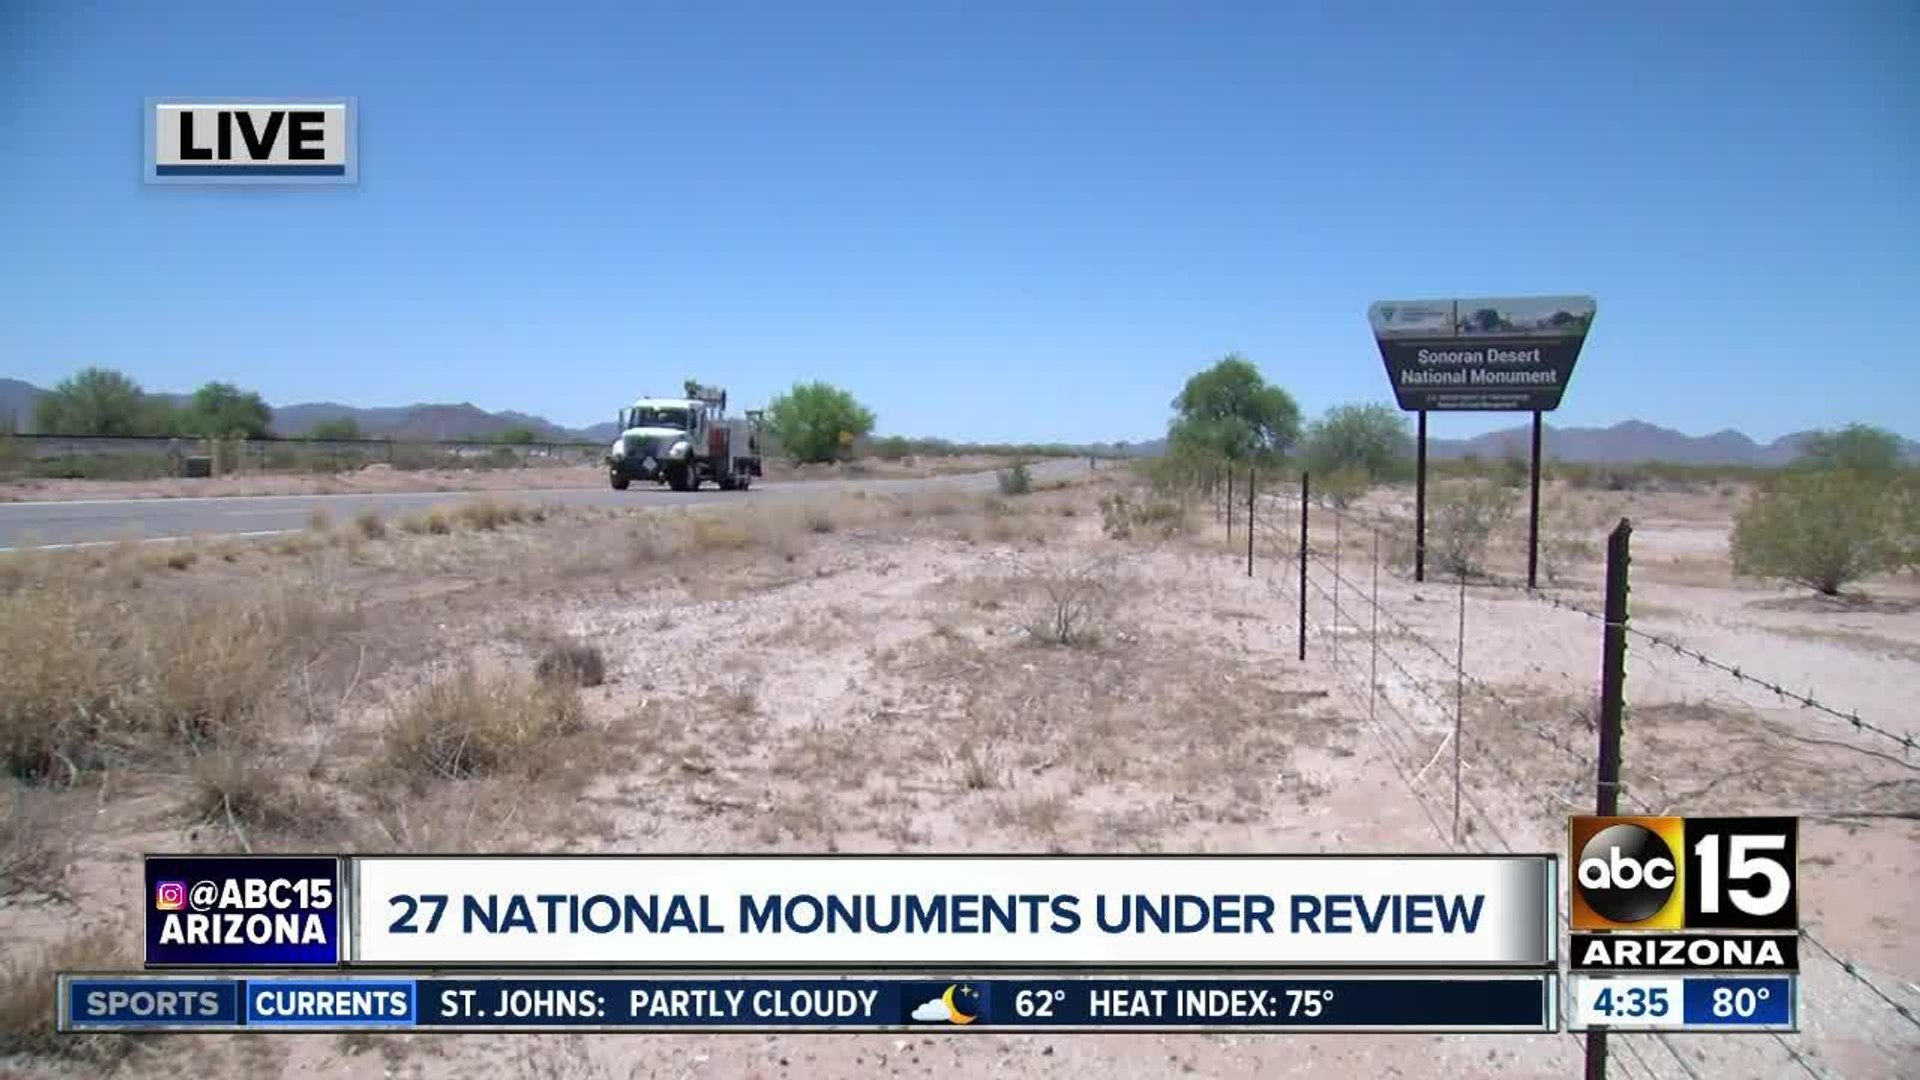 Dozens of national monuments under review